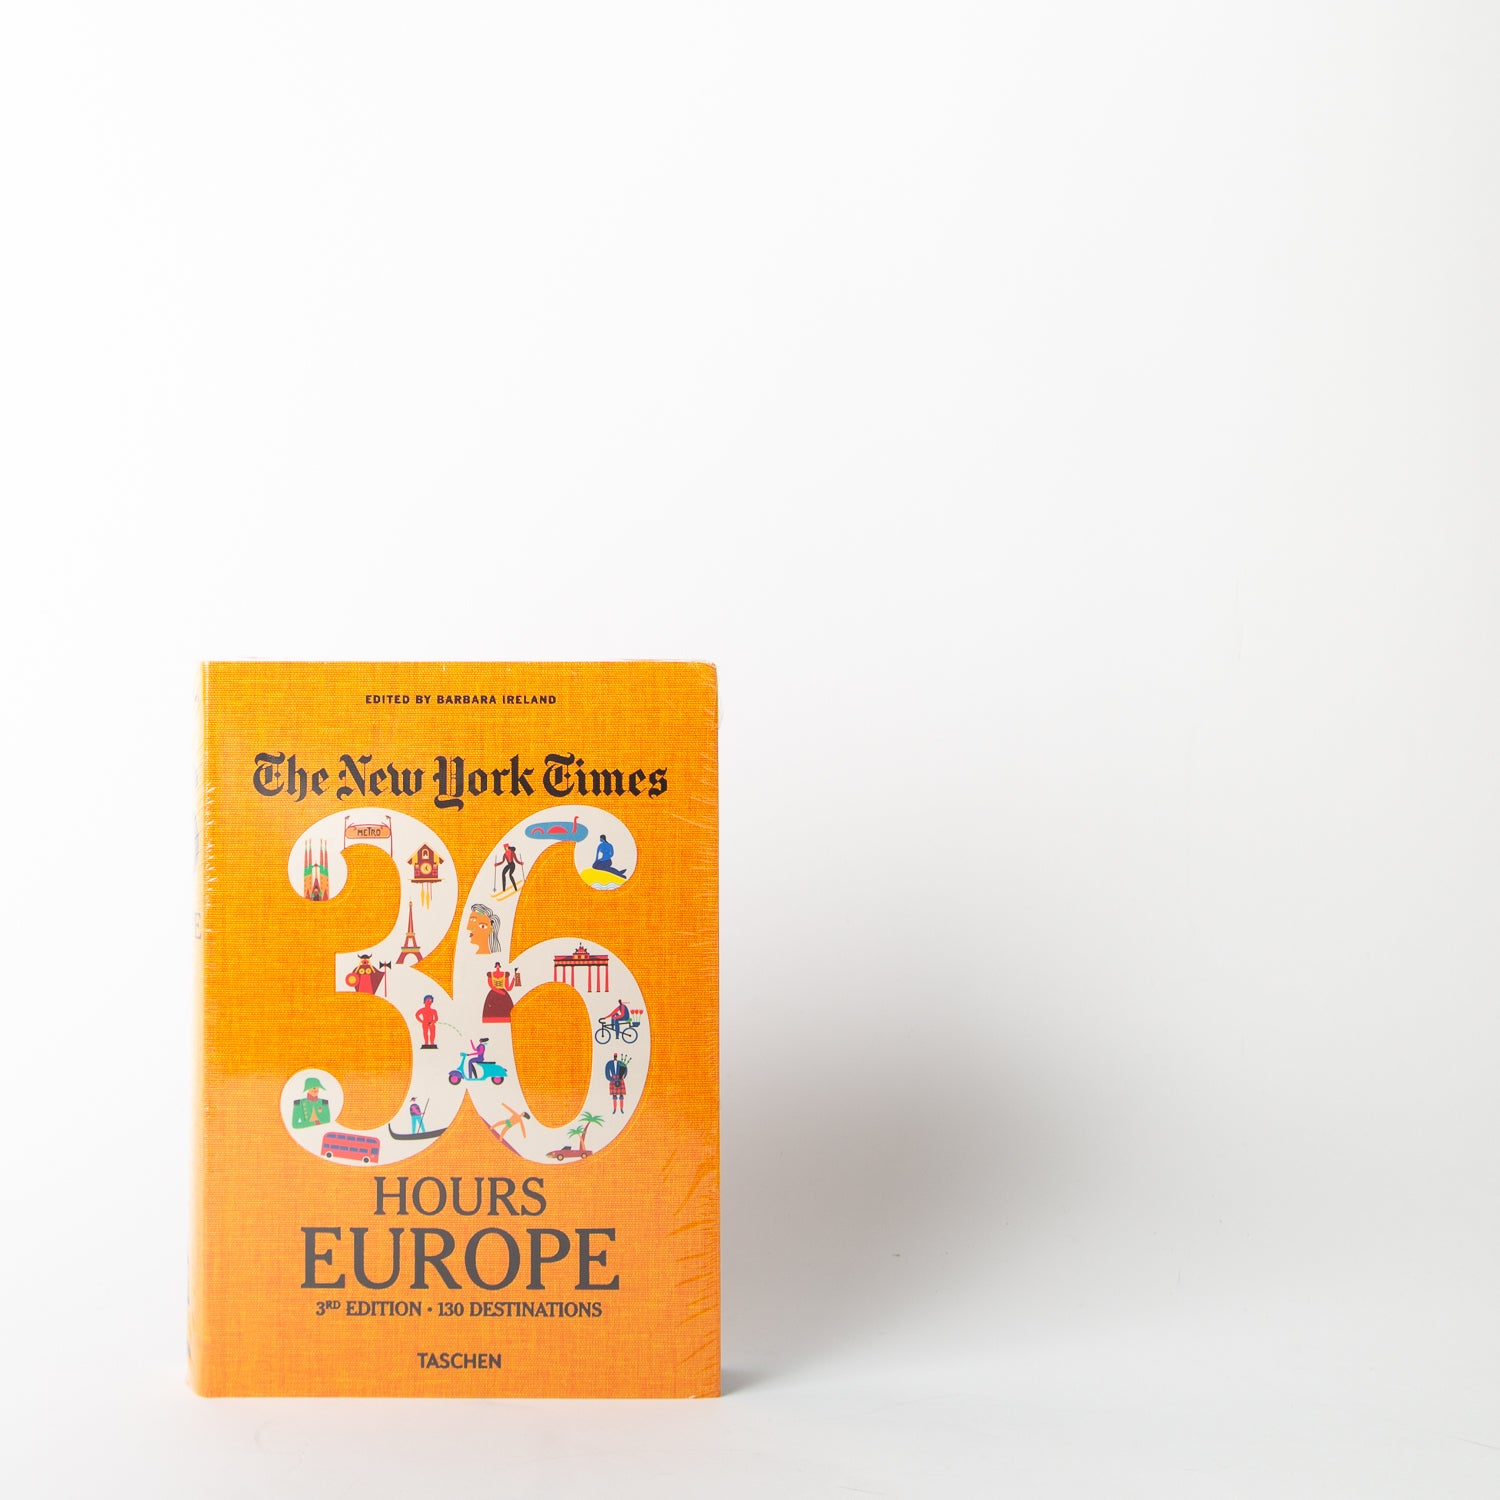 New York Times 36 hours in Europe by Taschen at Secret Location